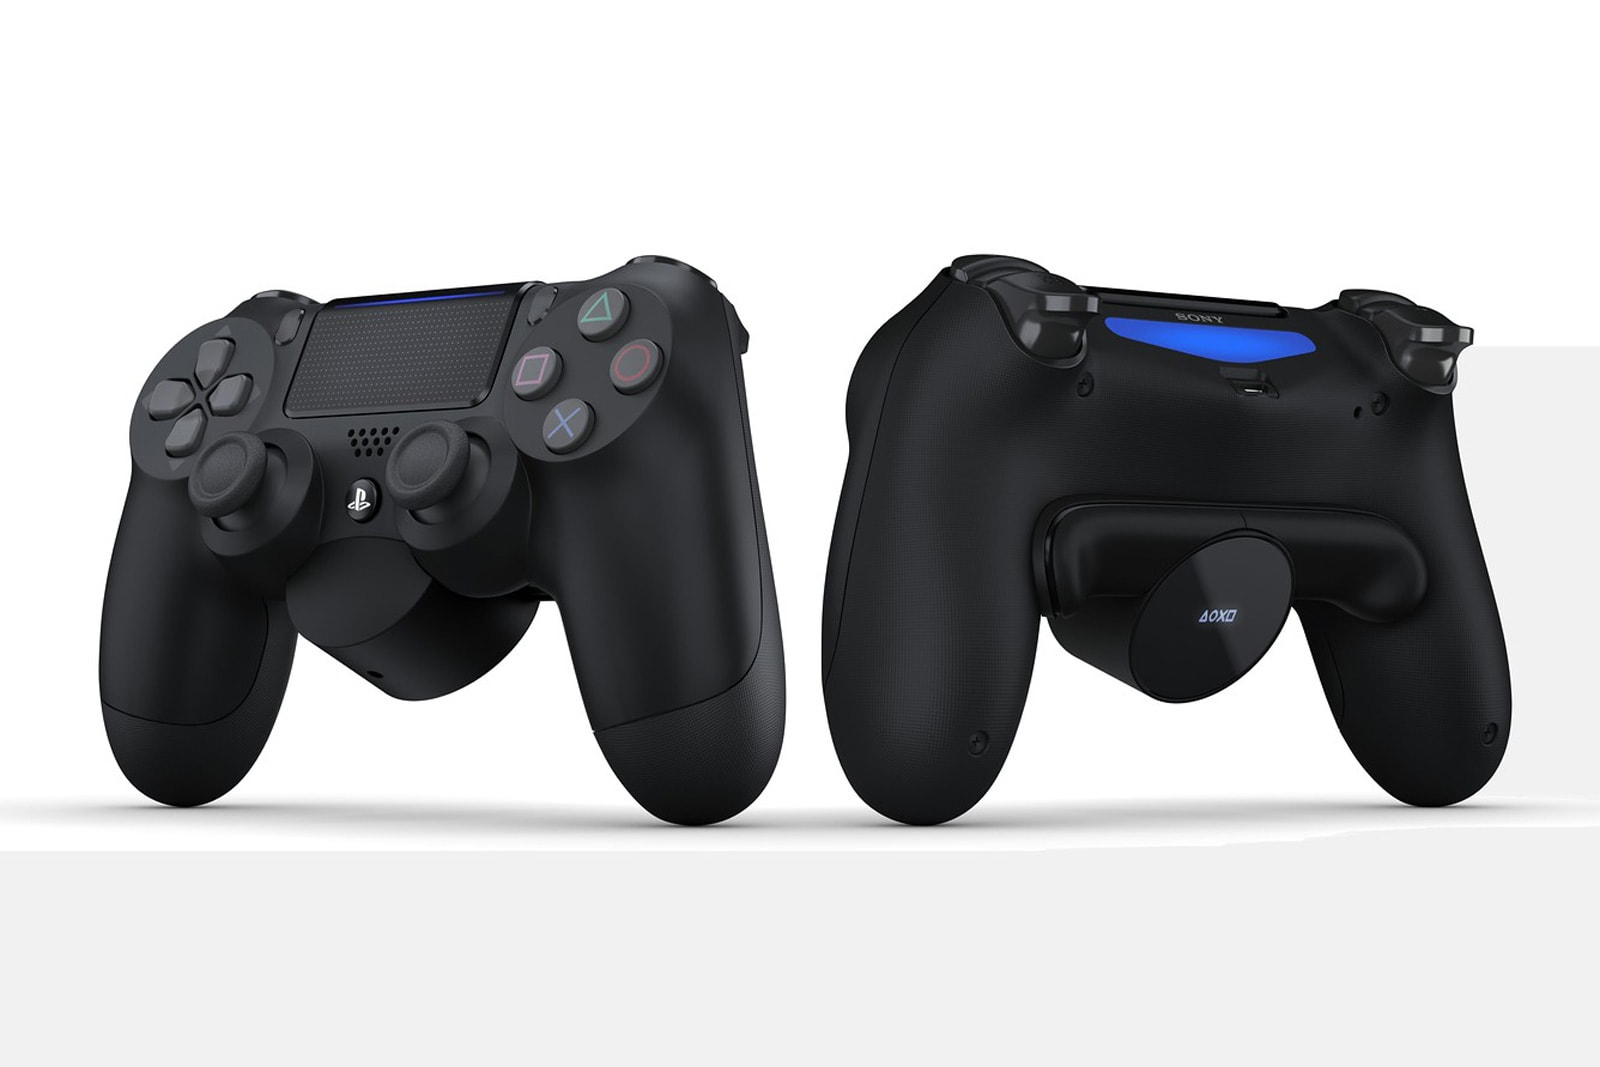 Sony's DualShock 4 attachment adds customizable buttons around back